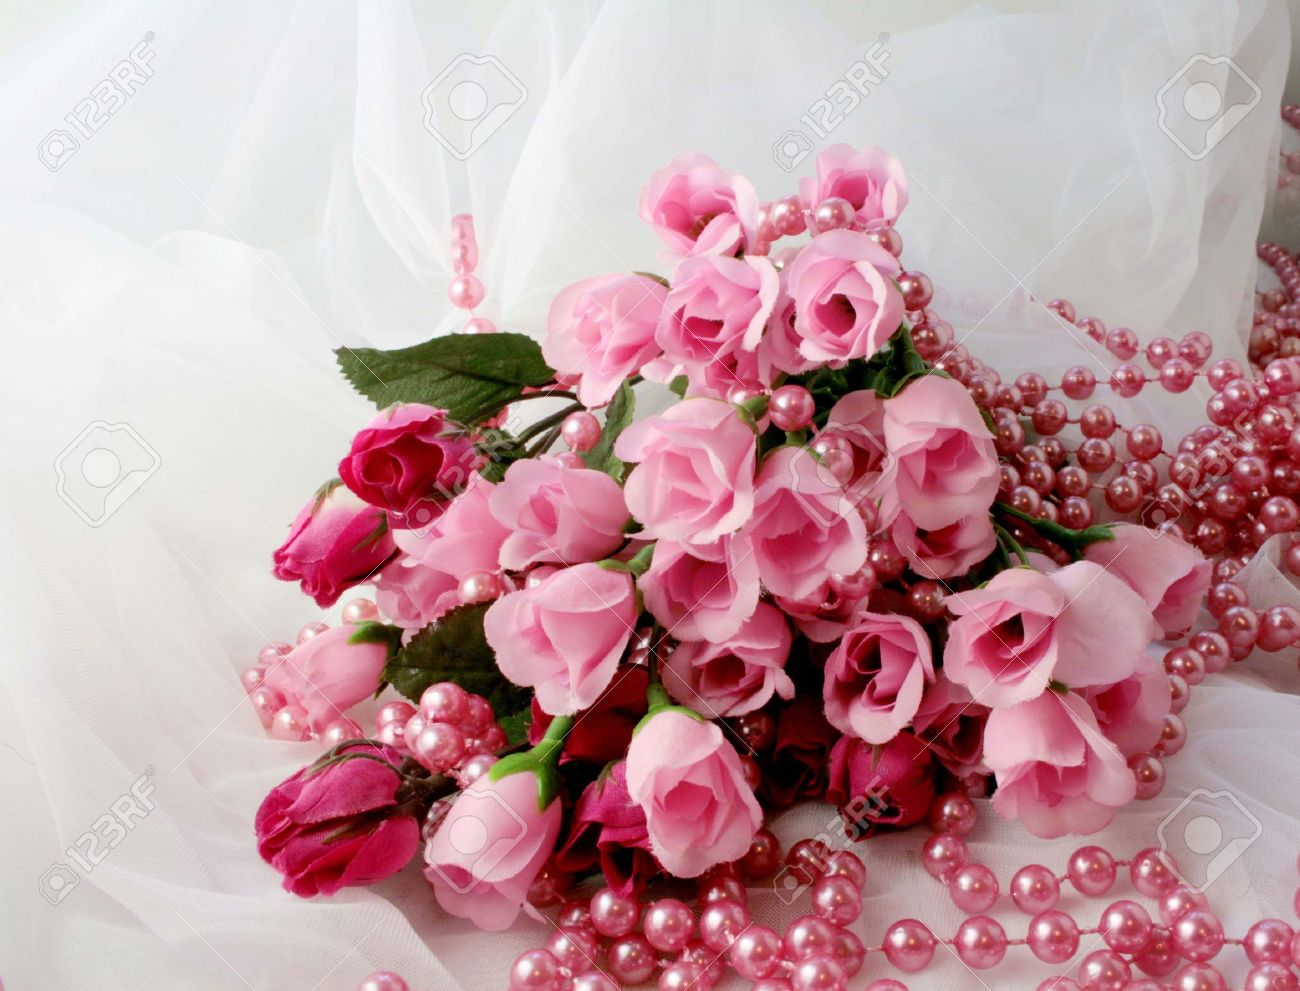 Bunch Of Pink Roses On White Lace Stock Photo Picture And Royalty